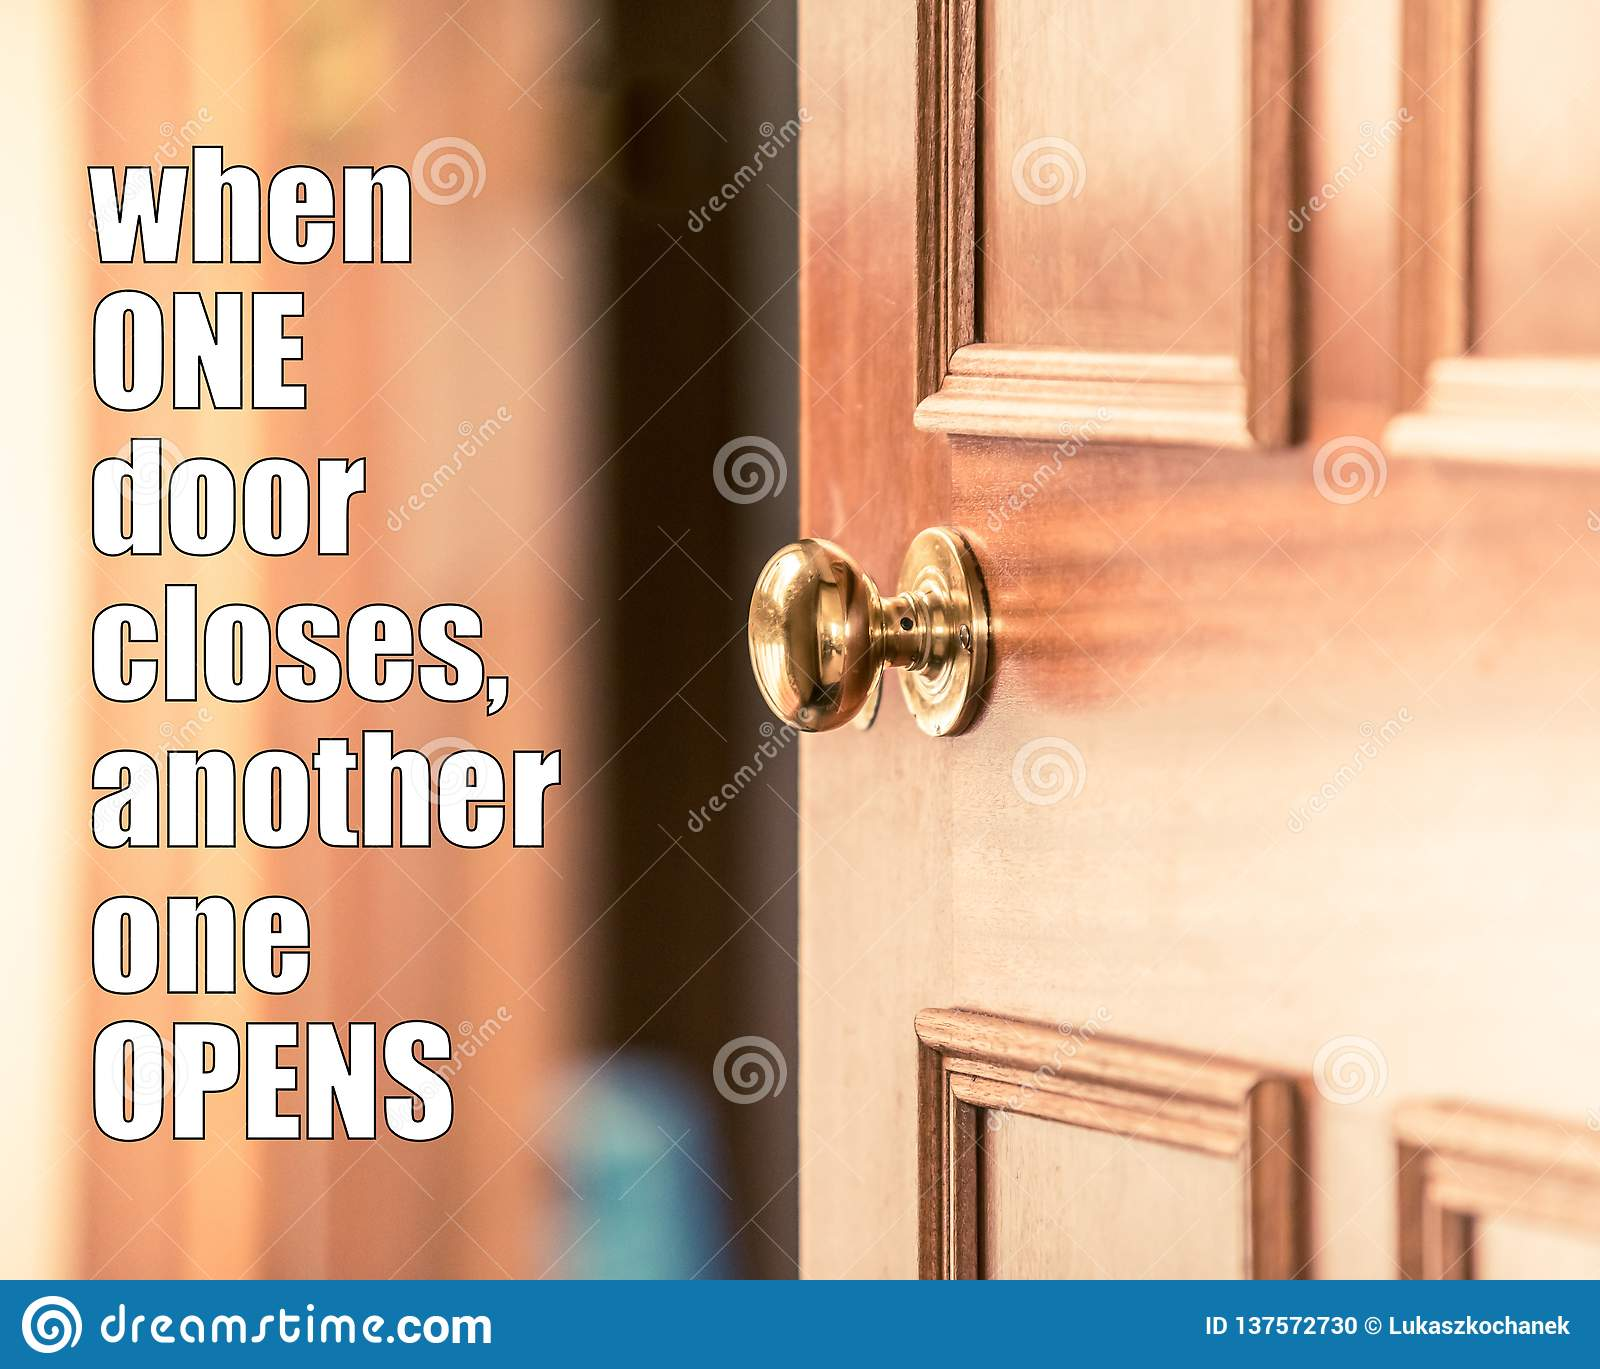 Quote When One Door Closes Another Opens: When One Door Closes Another One